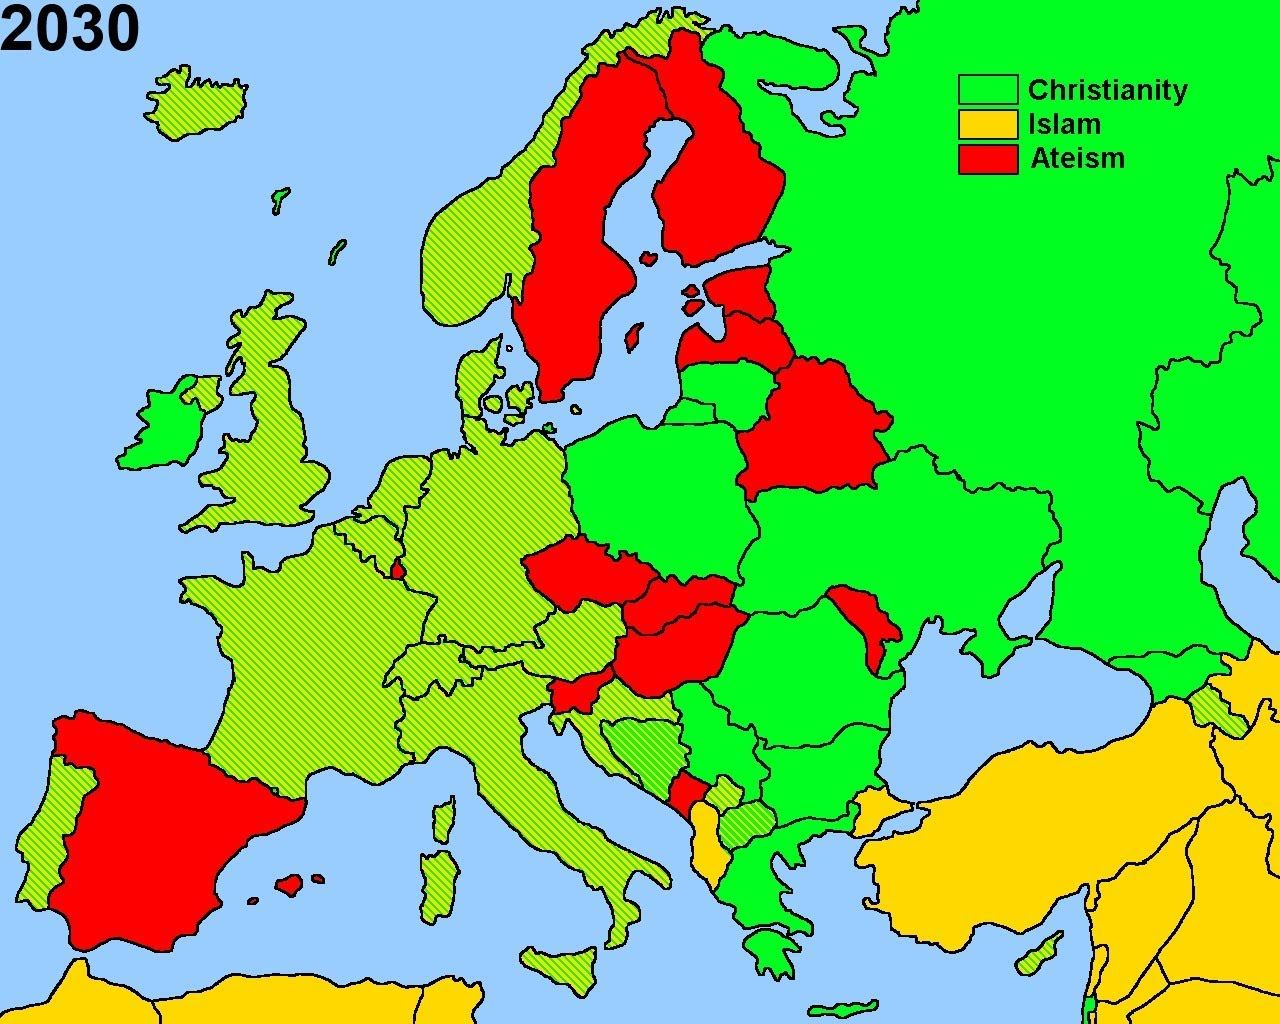 Future Religion in Europe 2050 Muslim Christianity Atheism